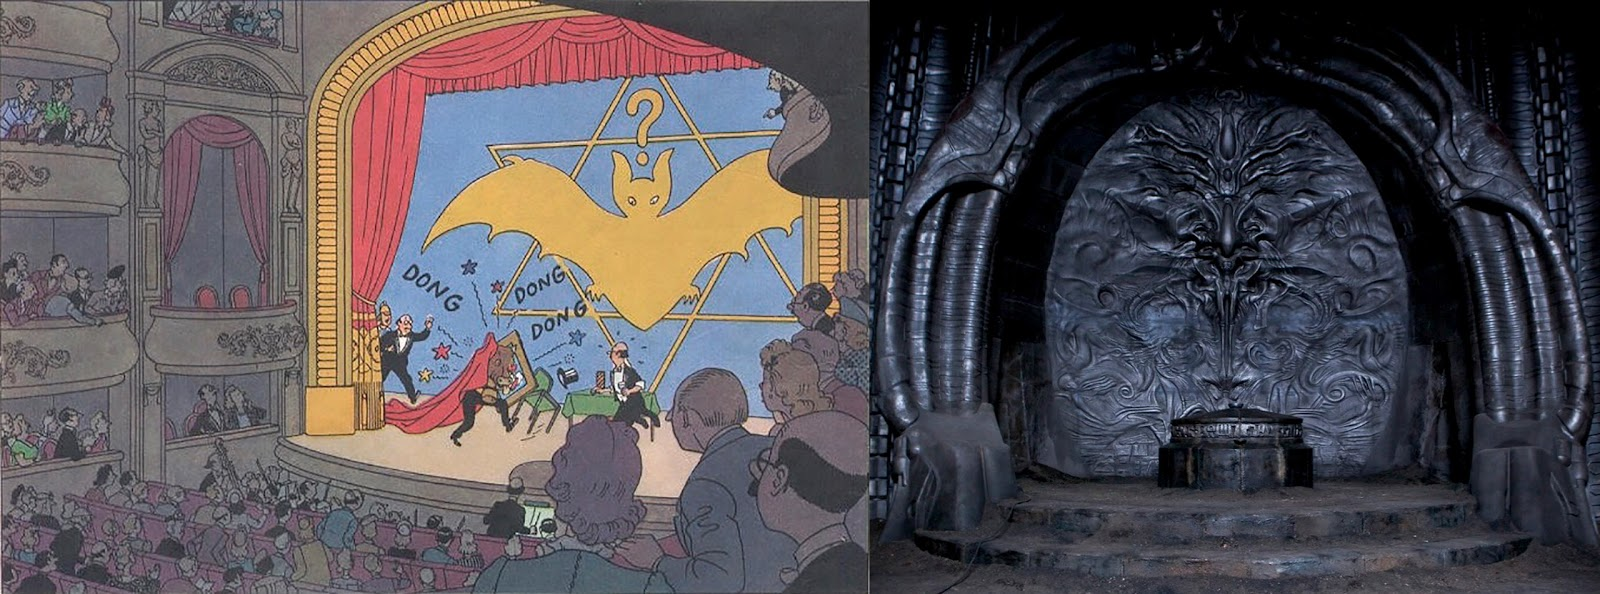 A Looking Through The Tintin Book Still And Noticed That In Thirteen Adventures Of Seven Crystal Balls It Features An Almost